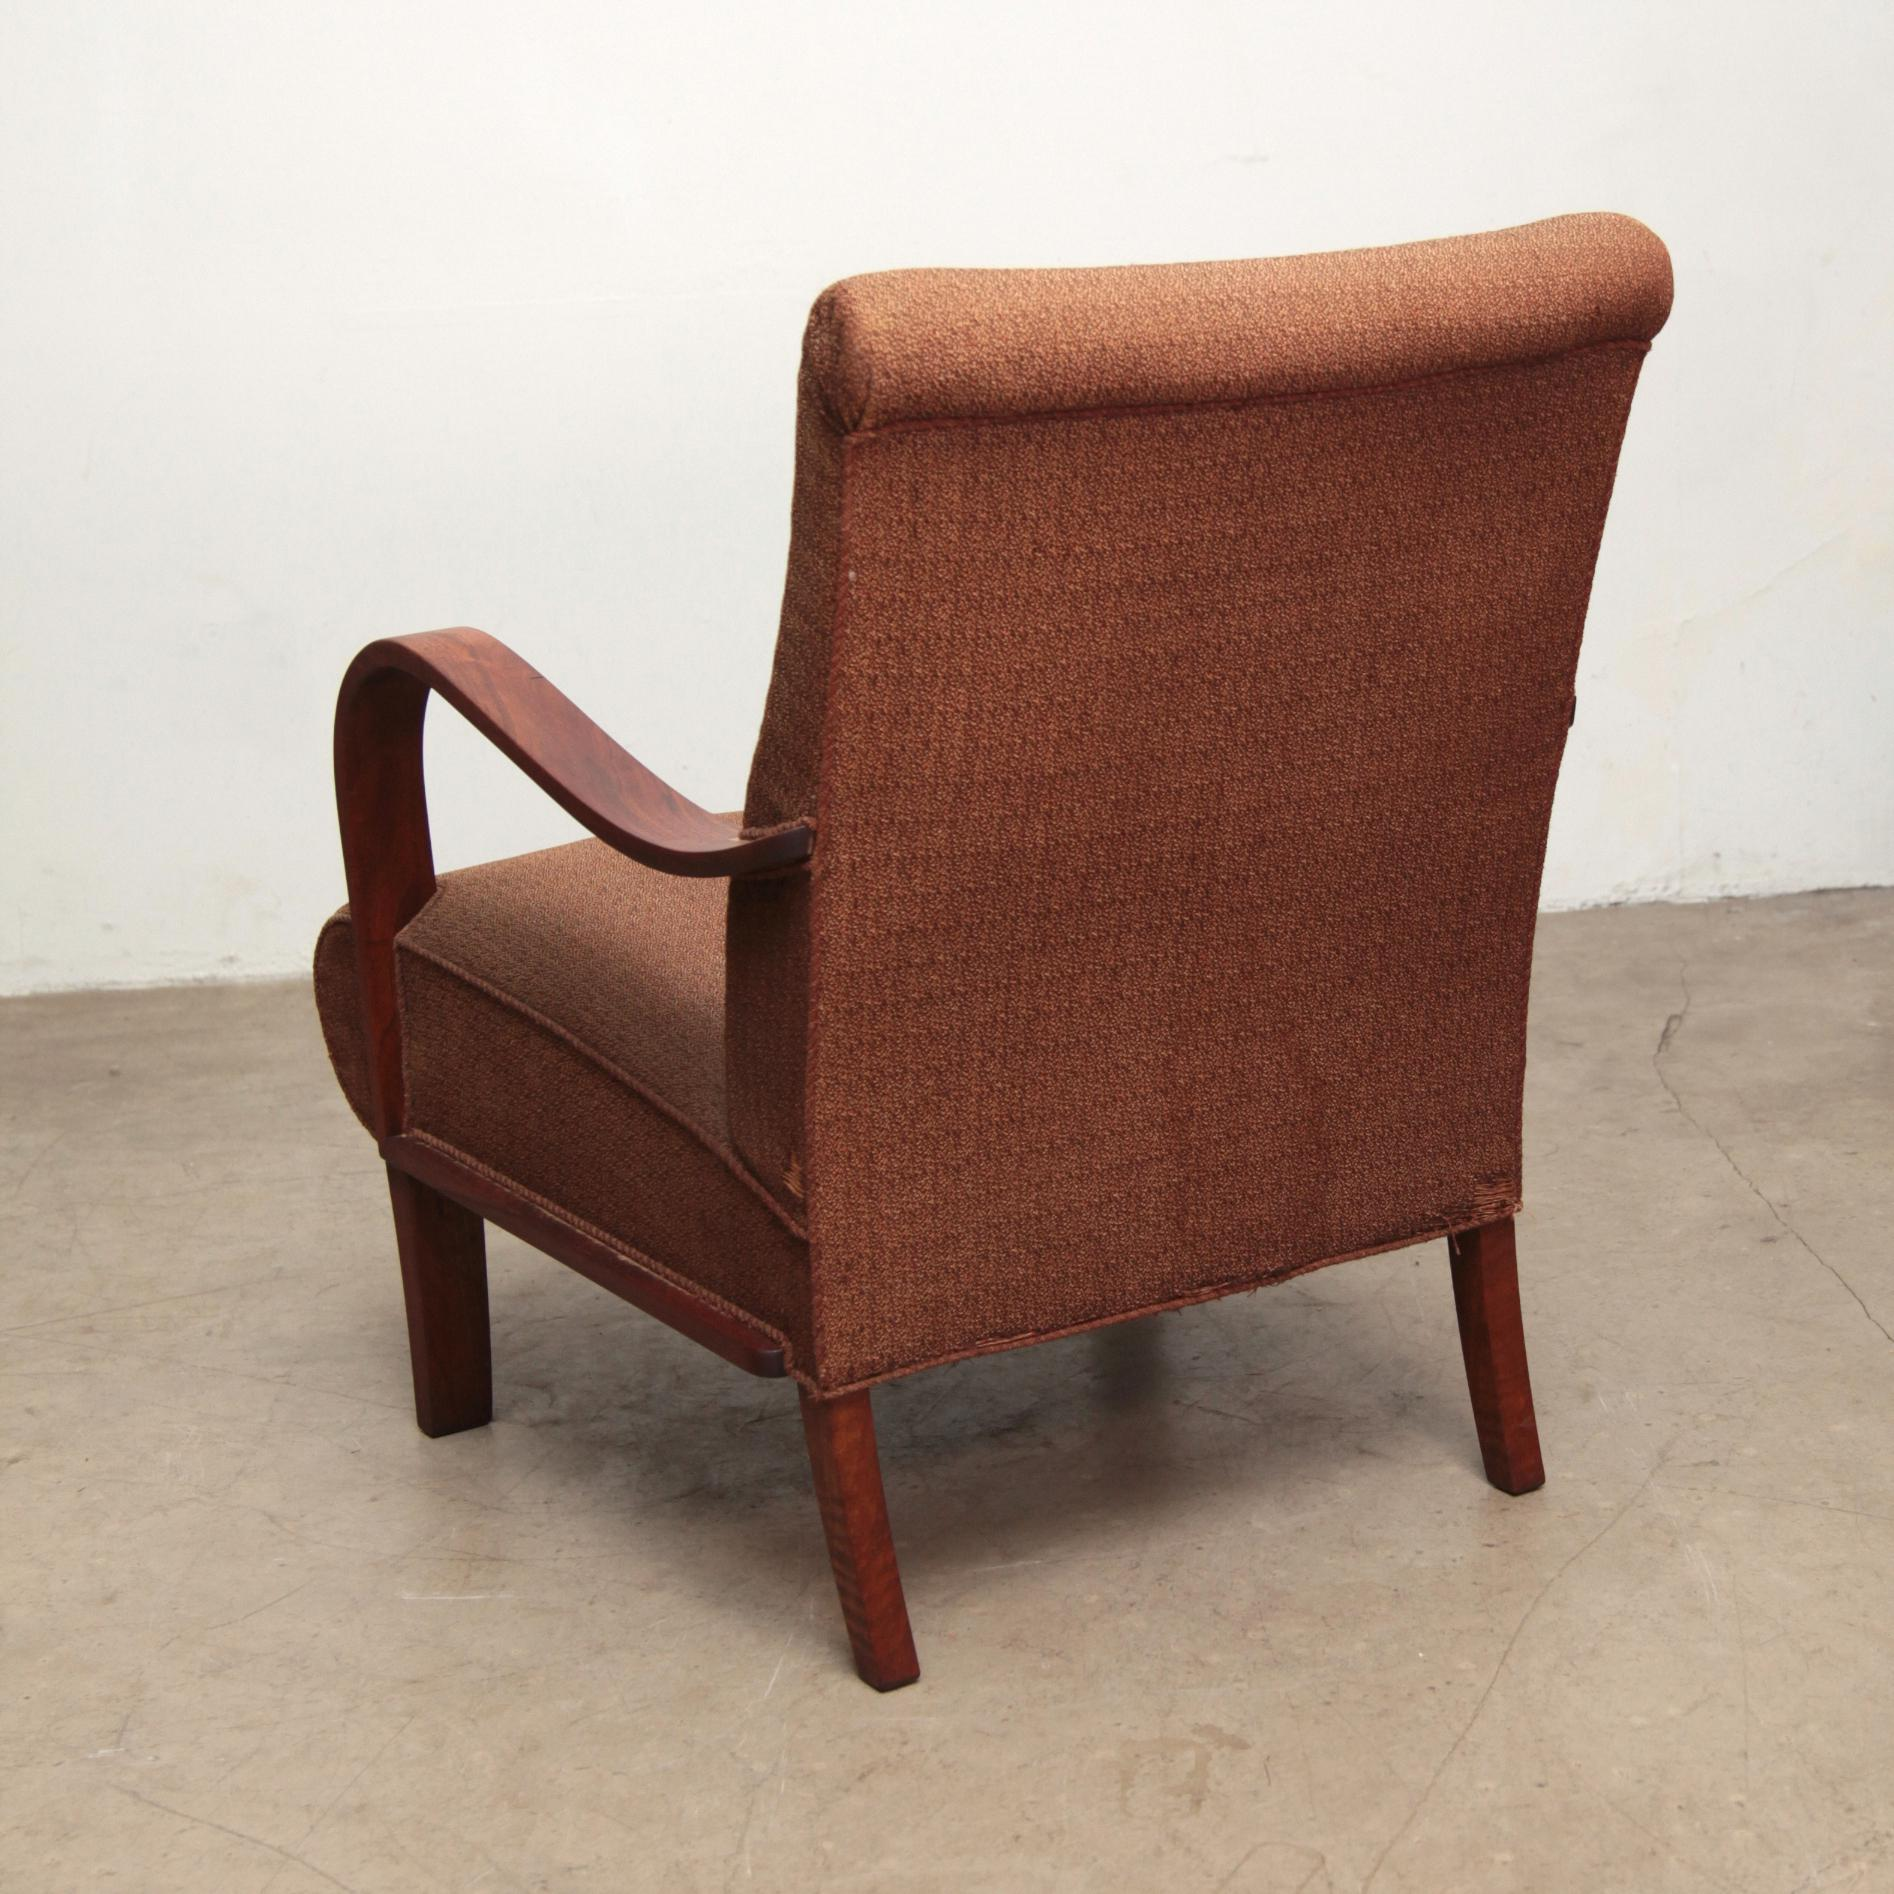 1940s Danish Art Deco Bentwood Club Chairs - a Pair